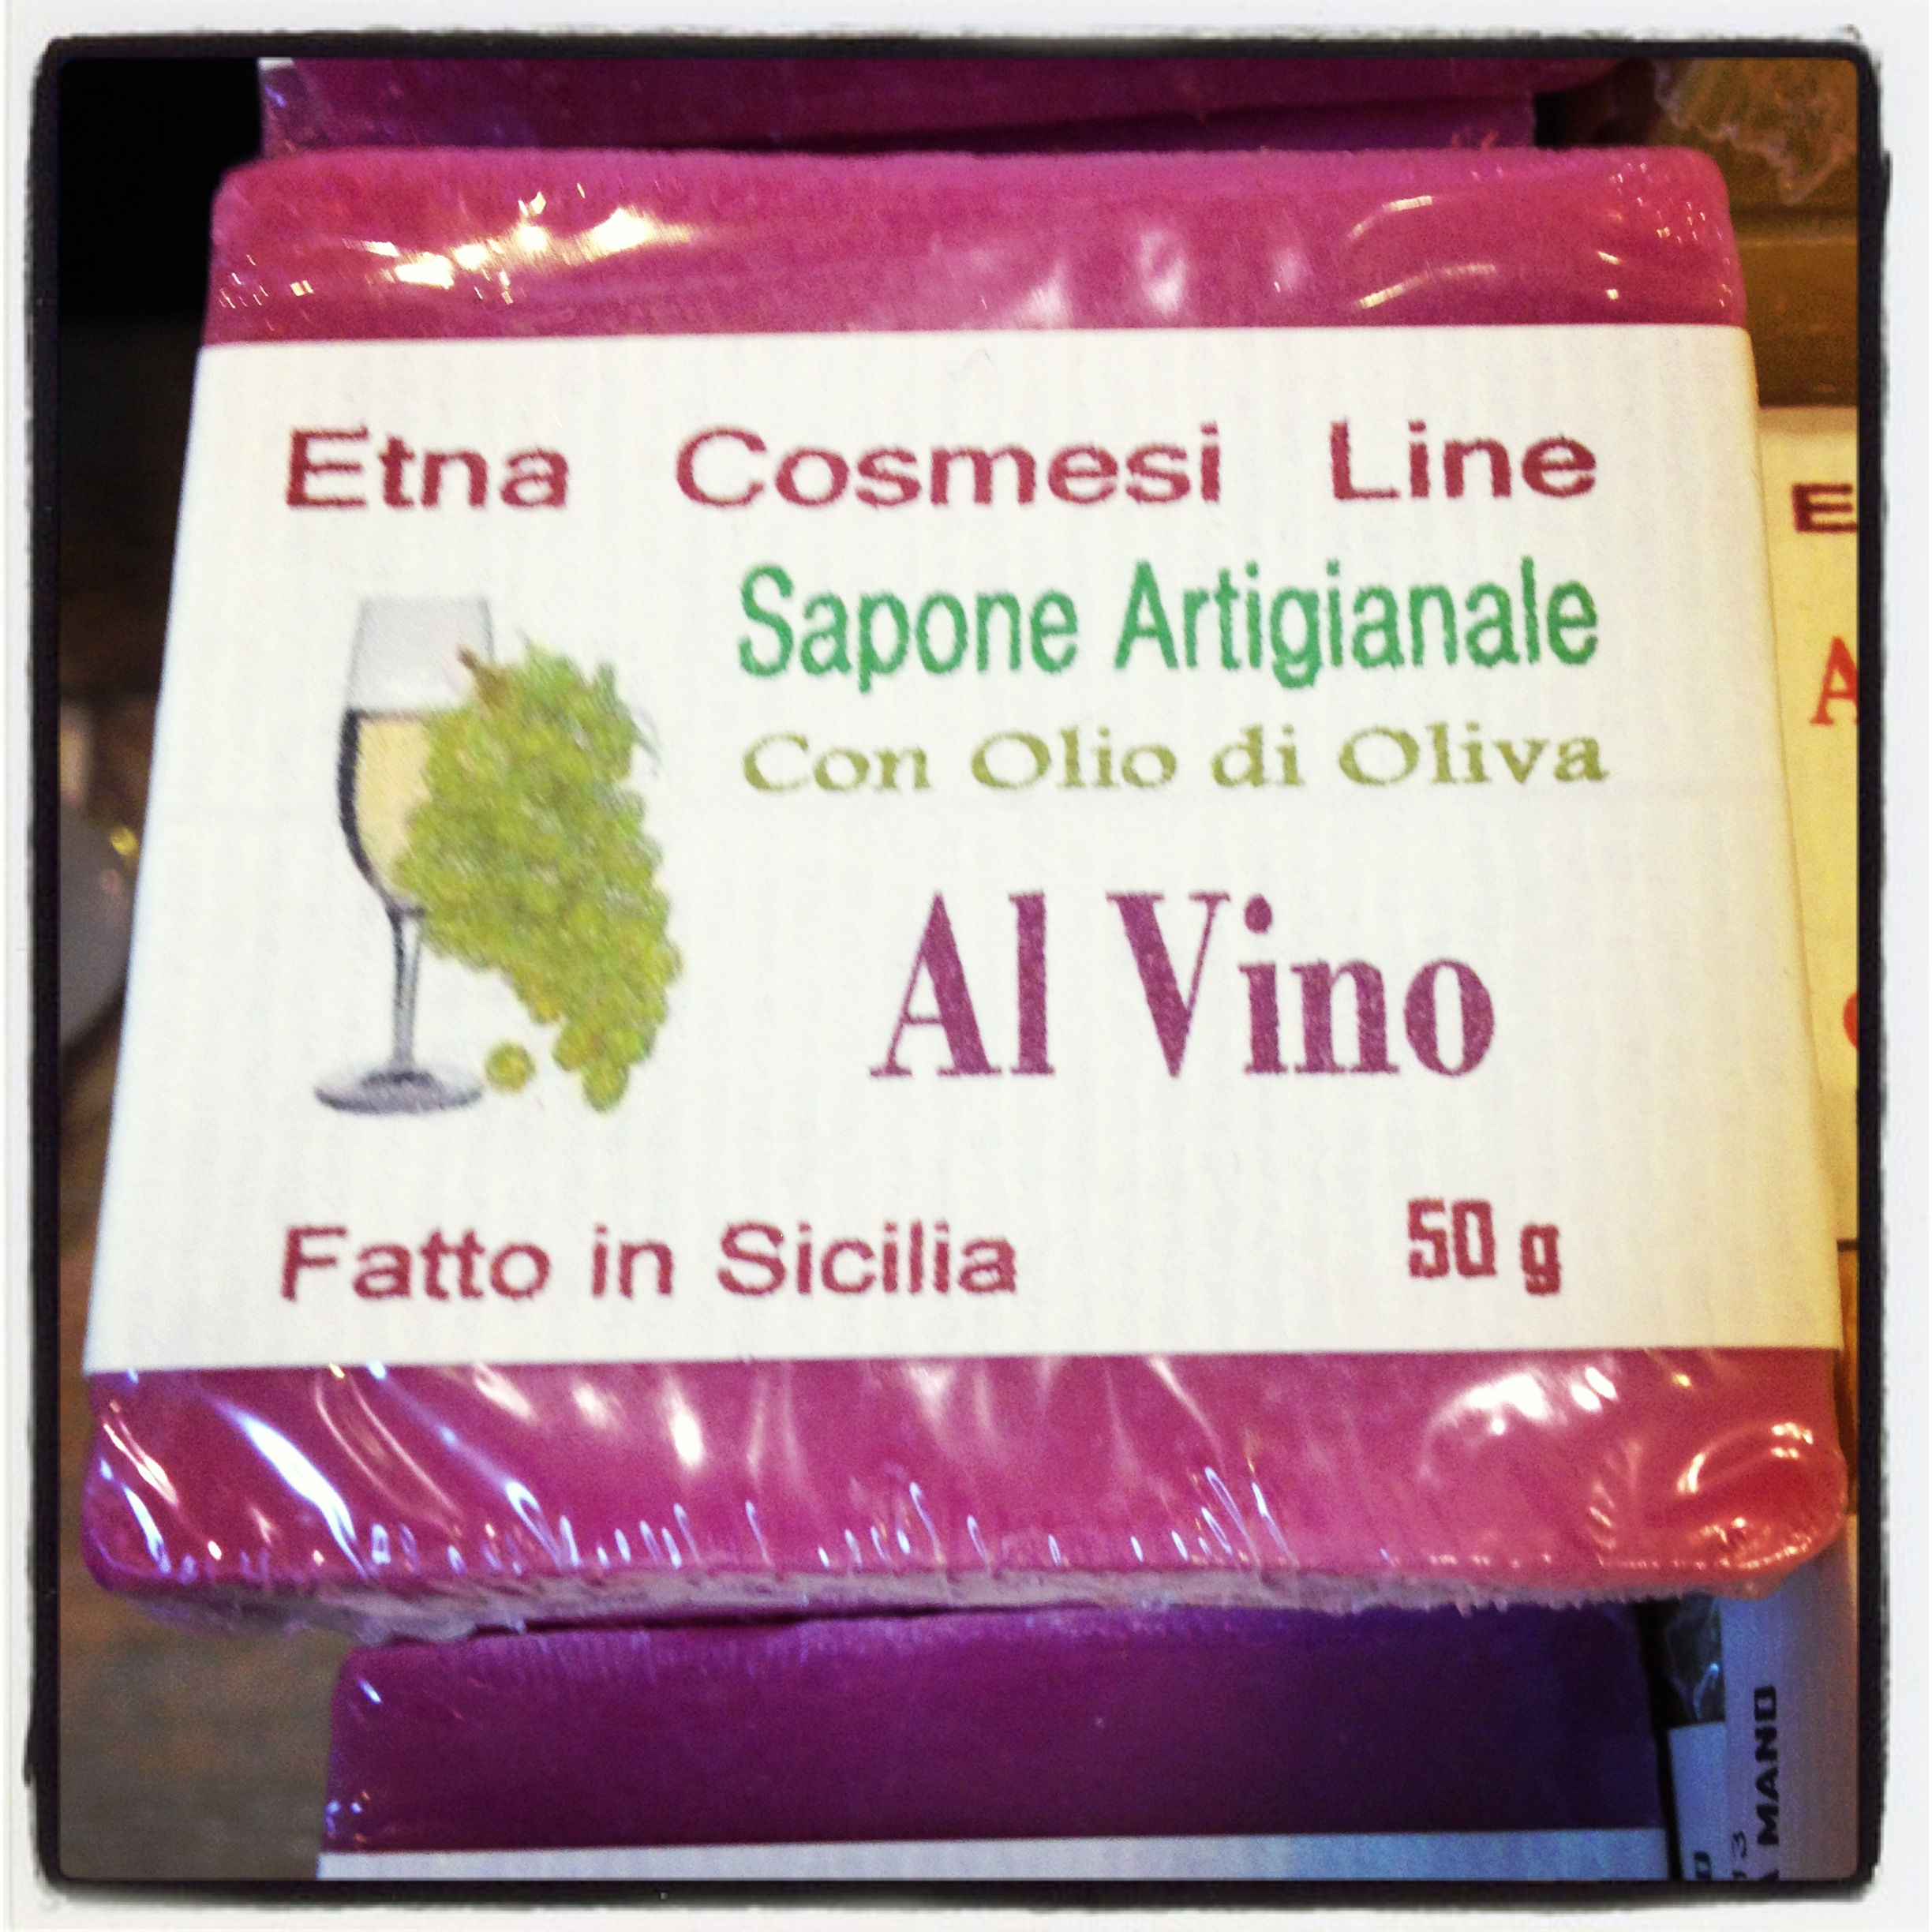 Sapone al vino- Italy from the Inside